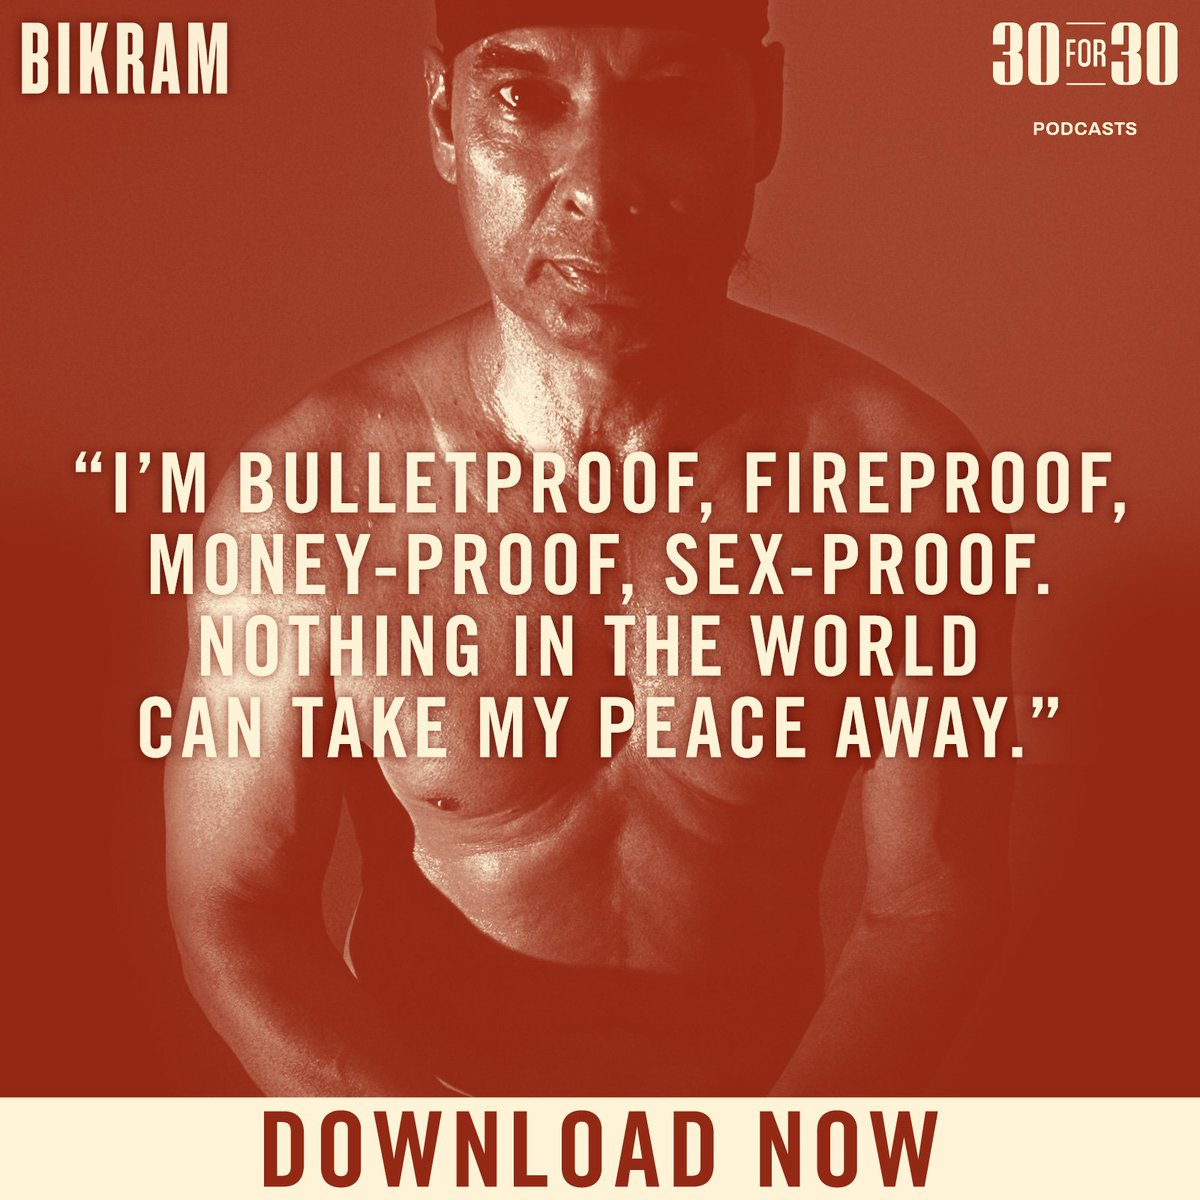 All five episodes of #Bikram are available NOW on @ApplePodcasts. #30for30Podcasts